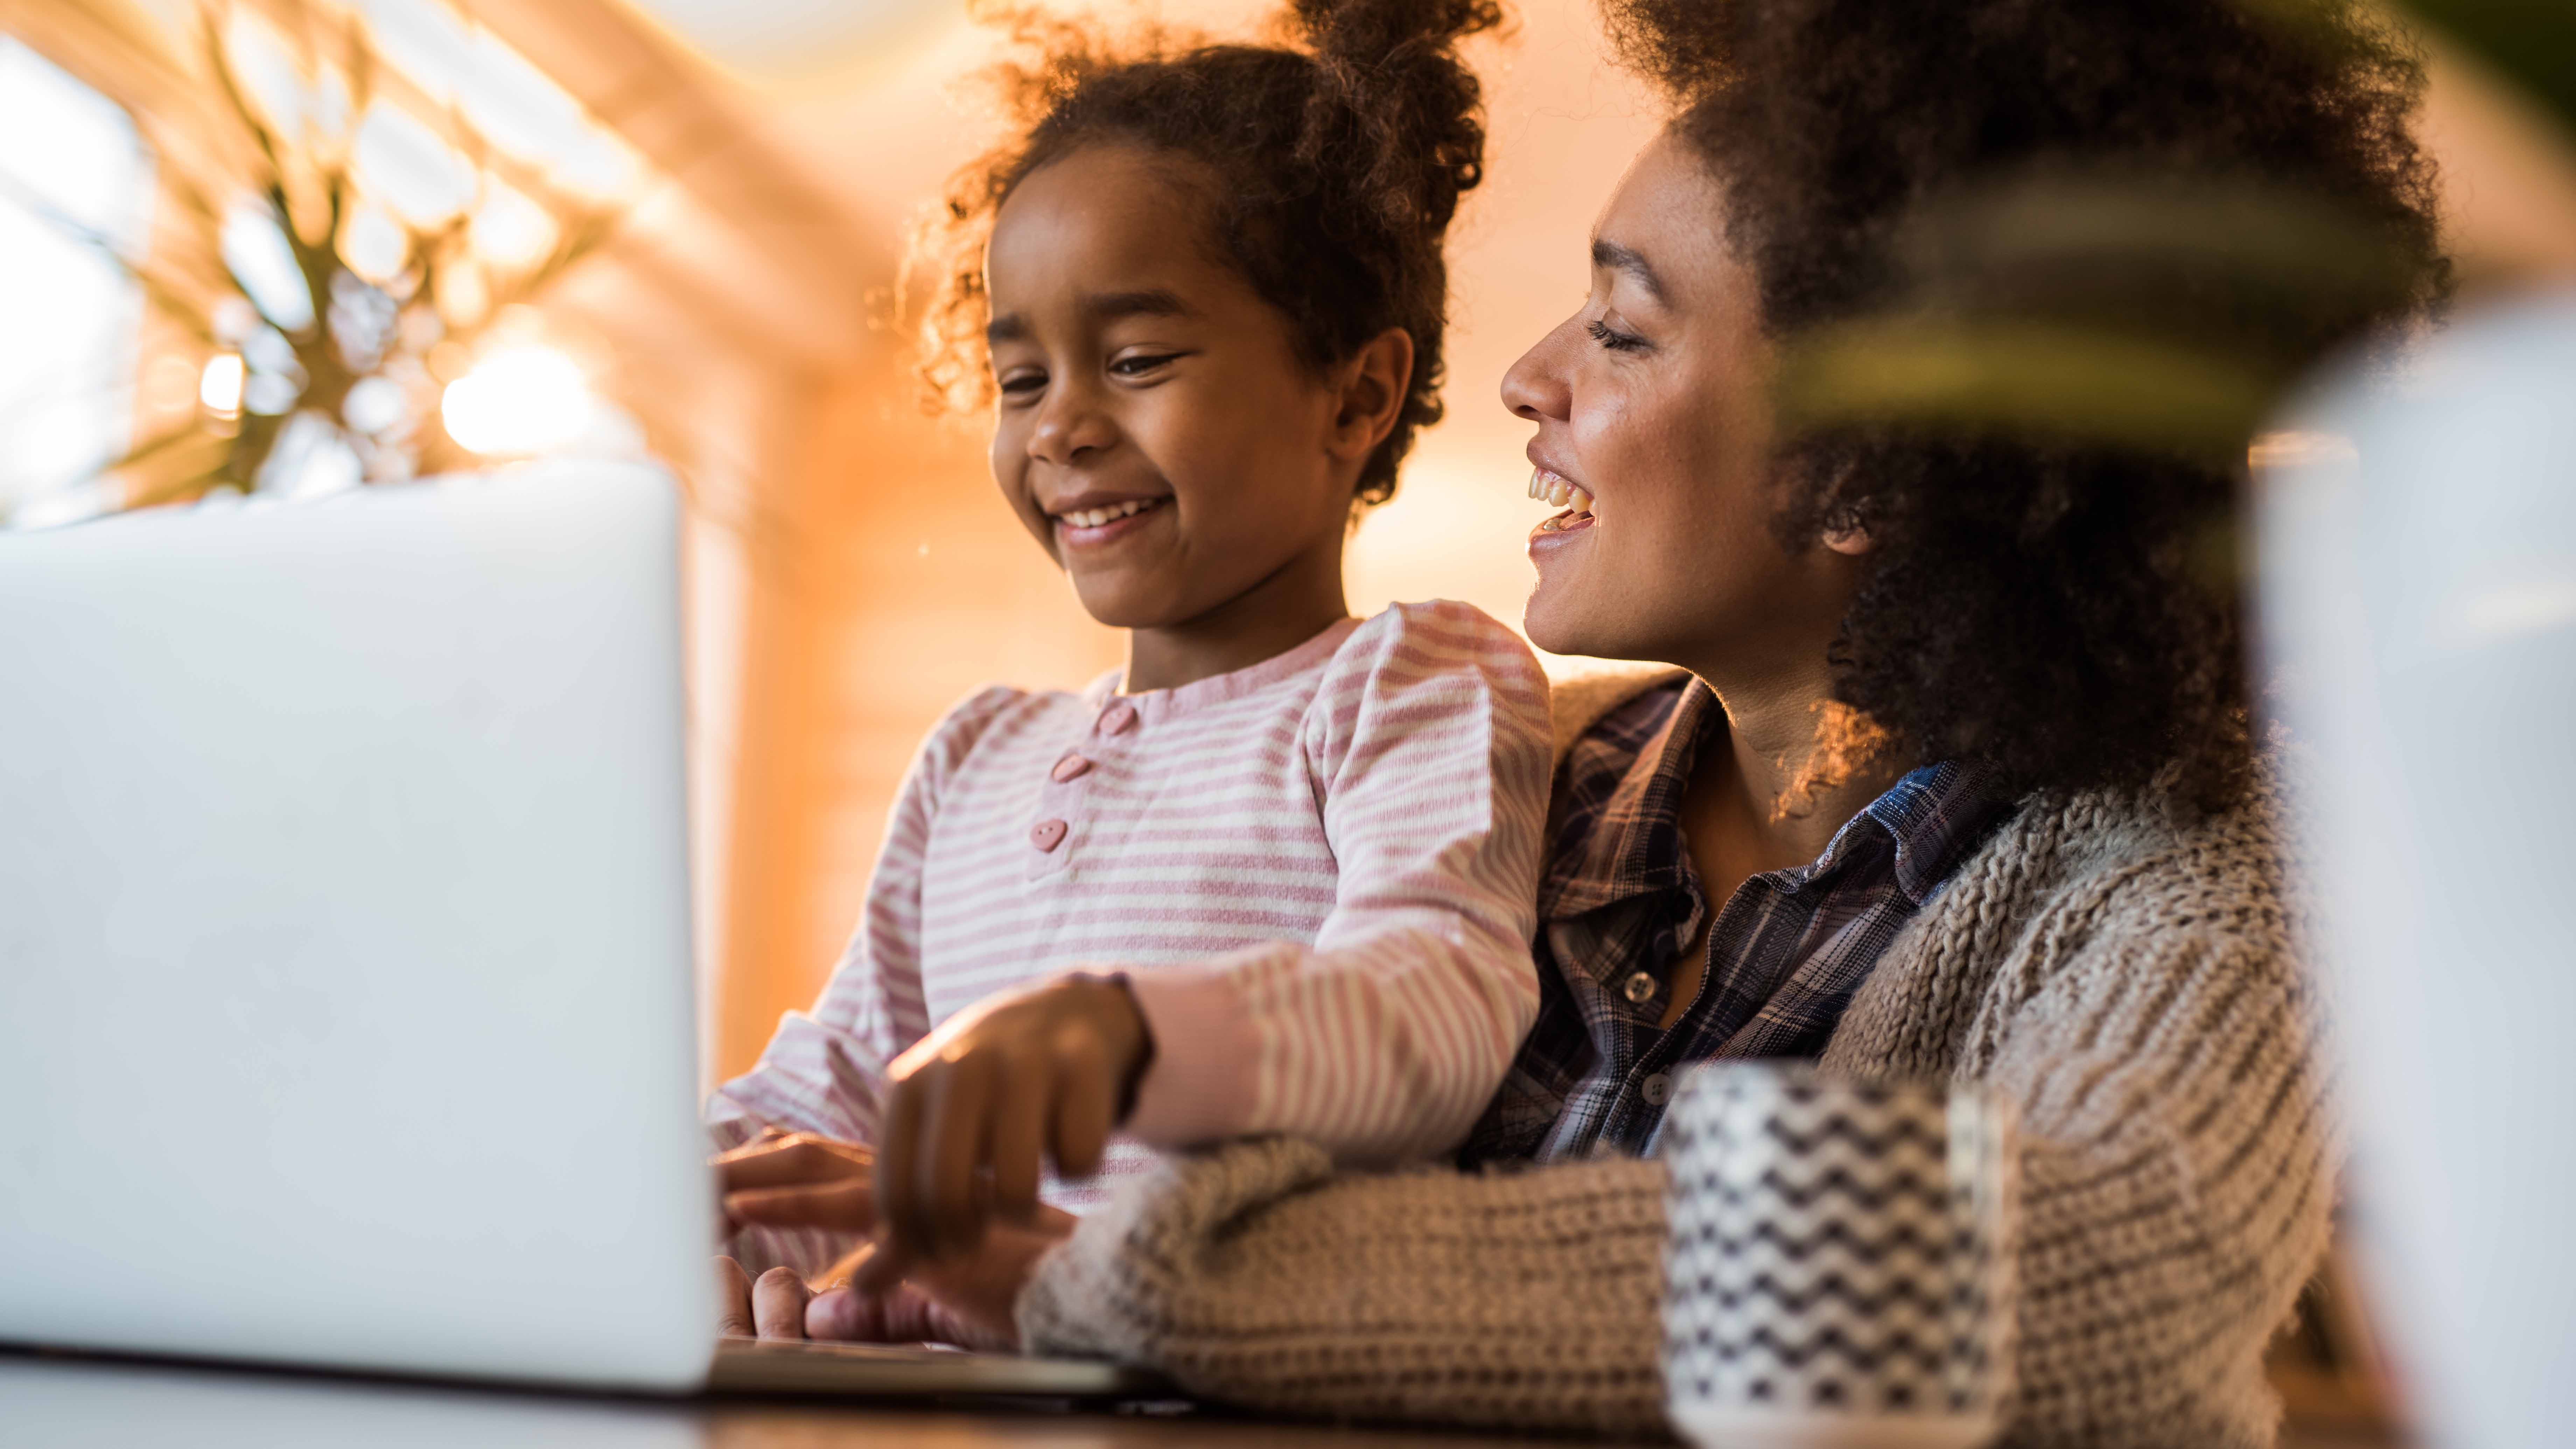 A little girl and her mom using a laptop.